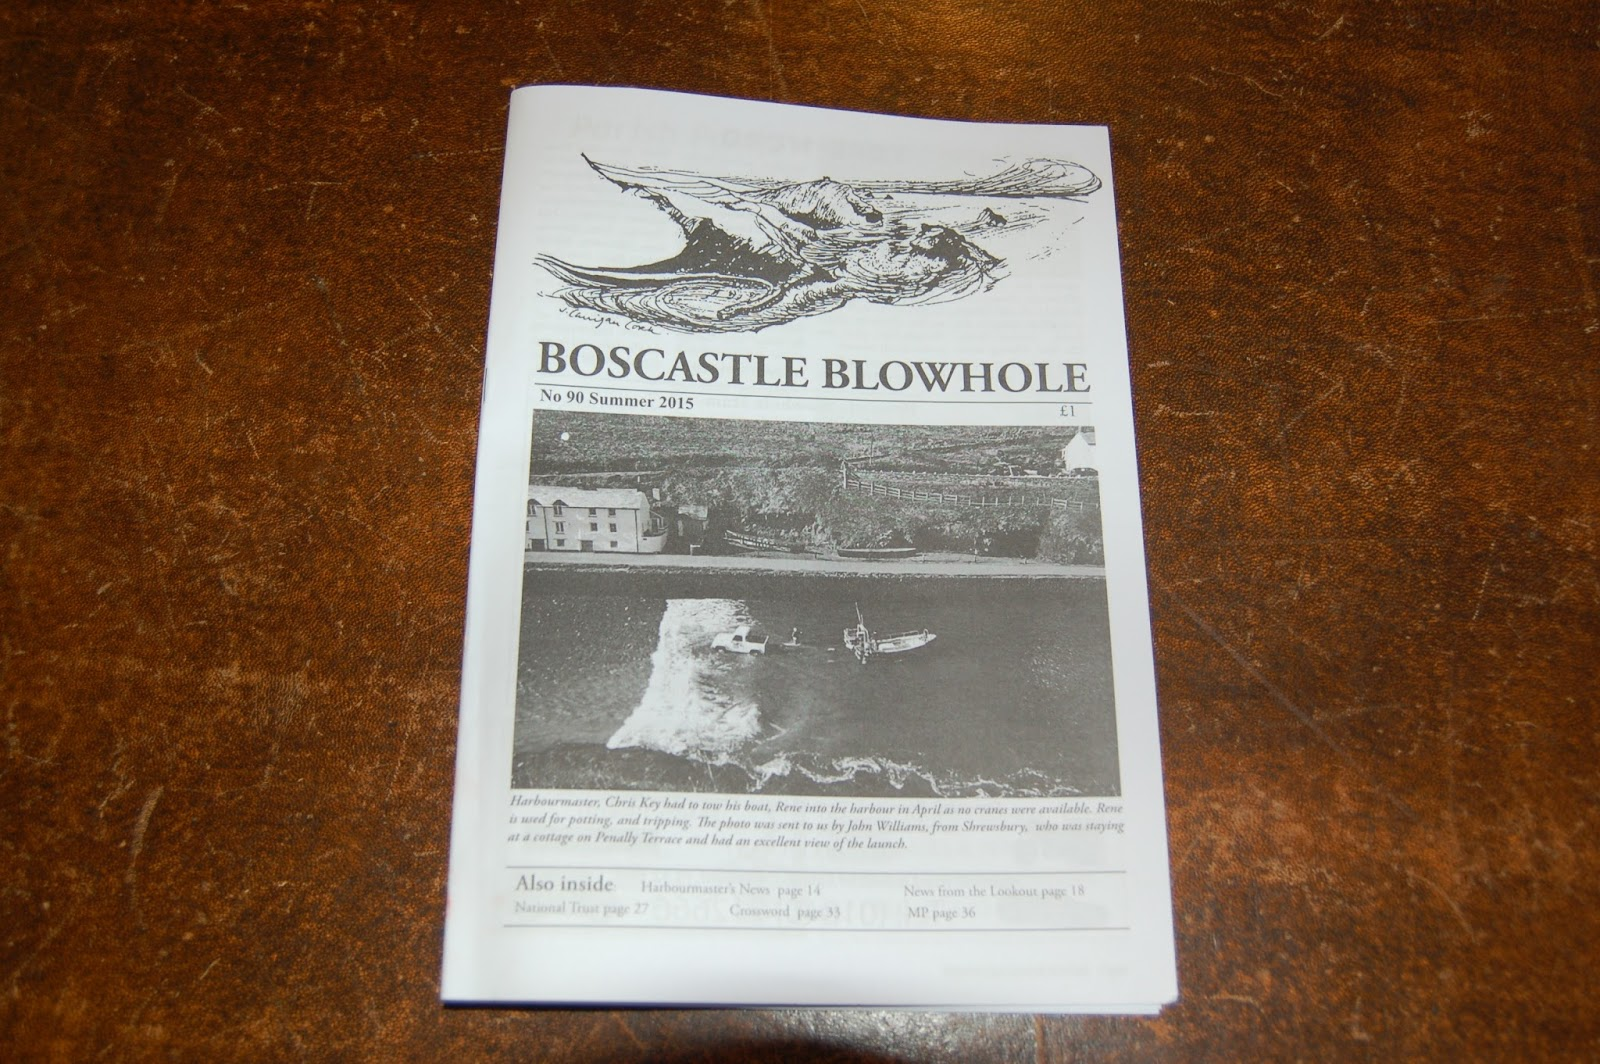 Great article on the Museum in the most recent edition of the Boscastle Blowhole